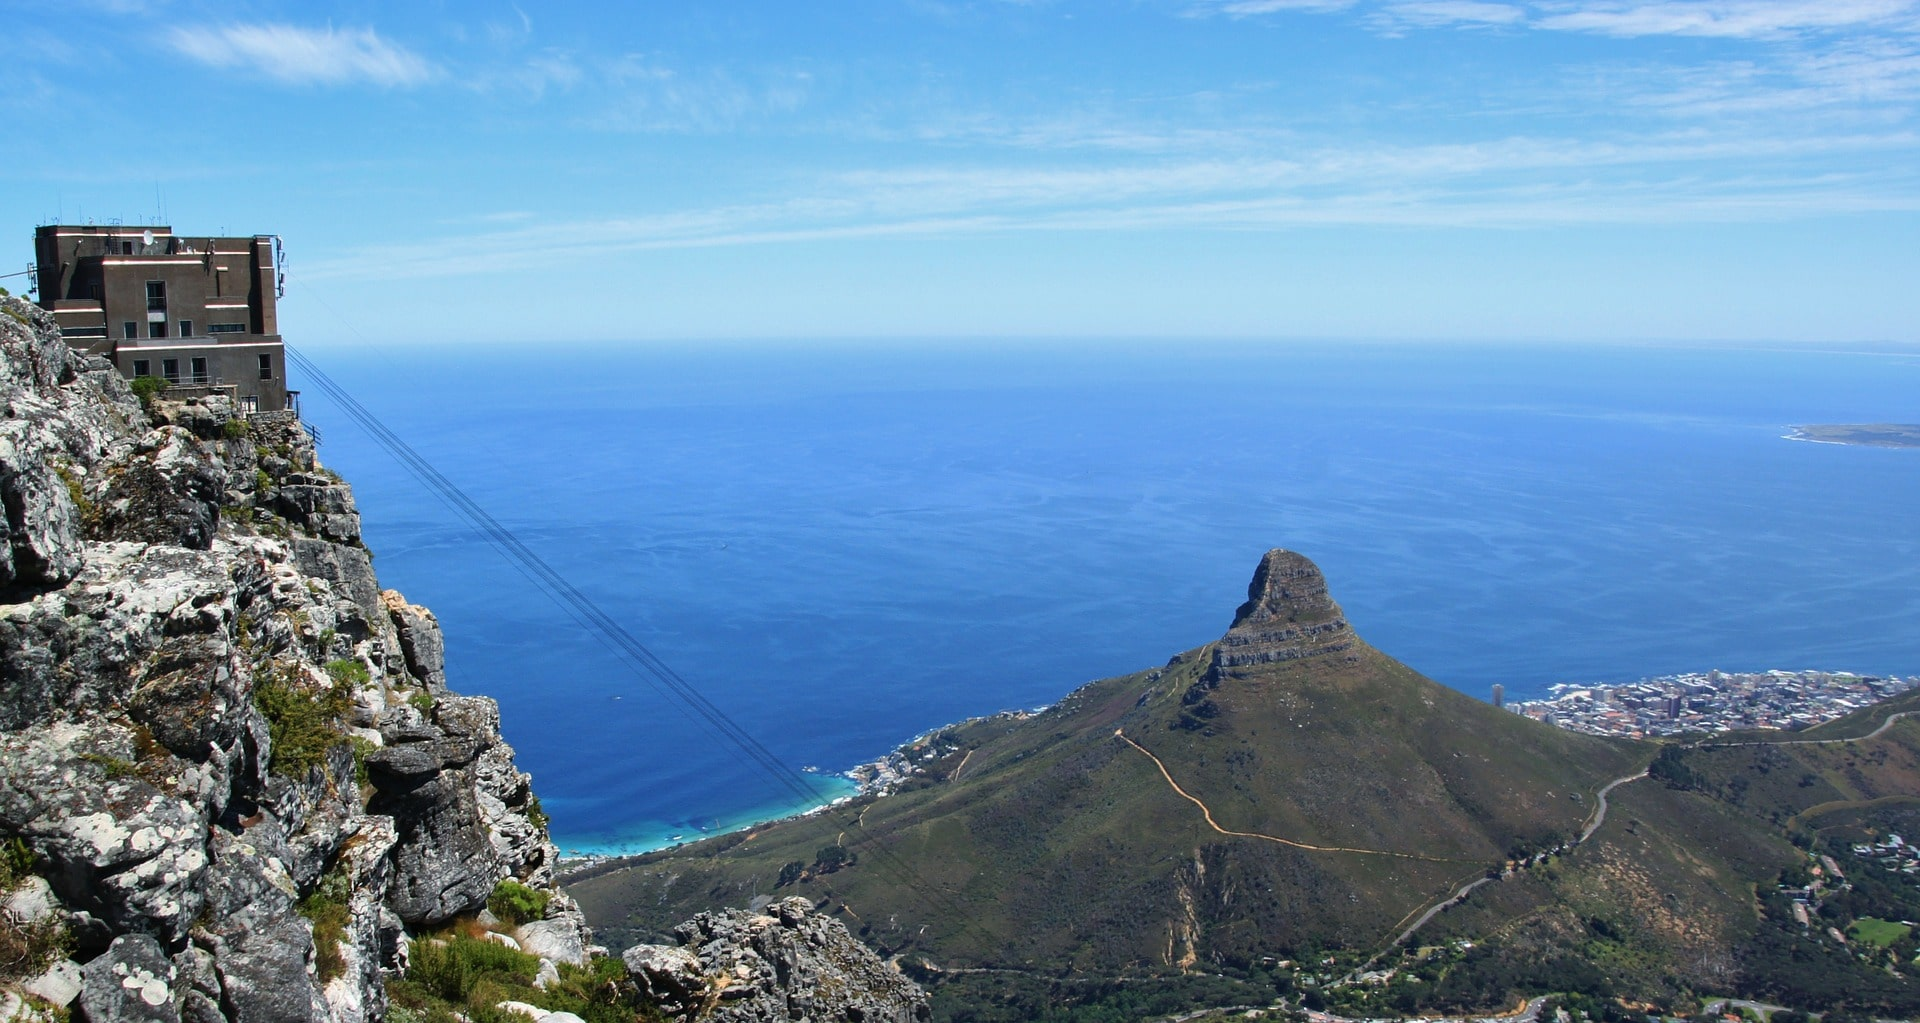 View of Lion's Head from the cable car station